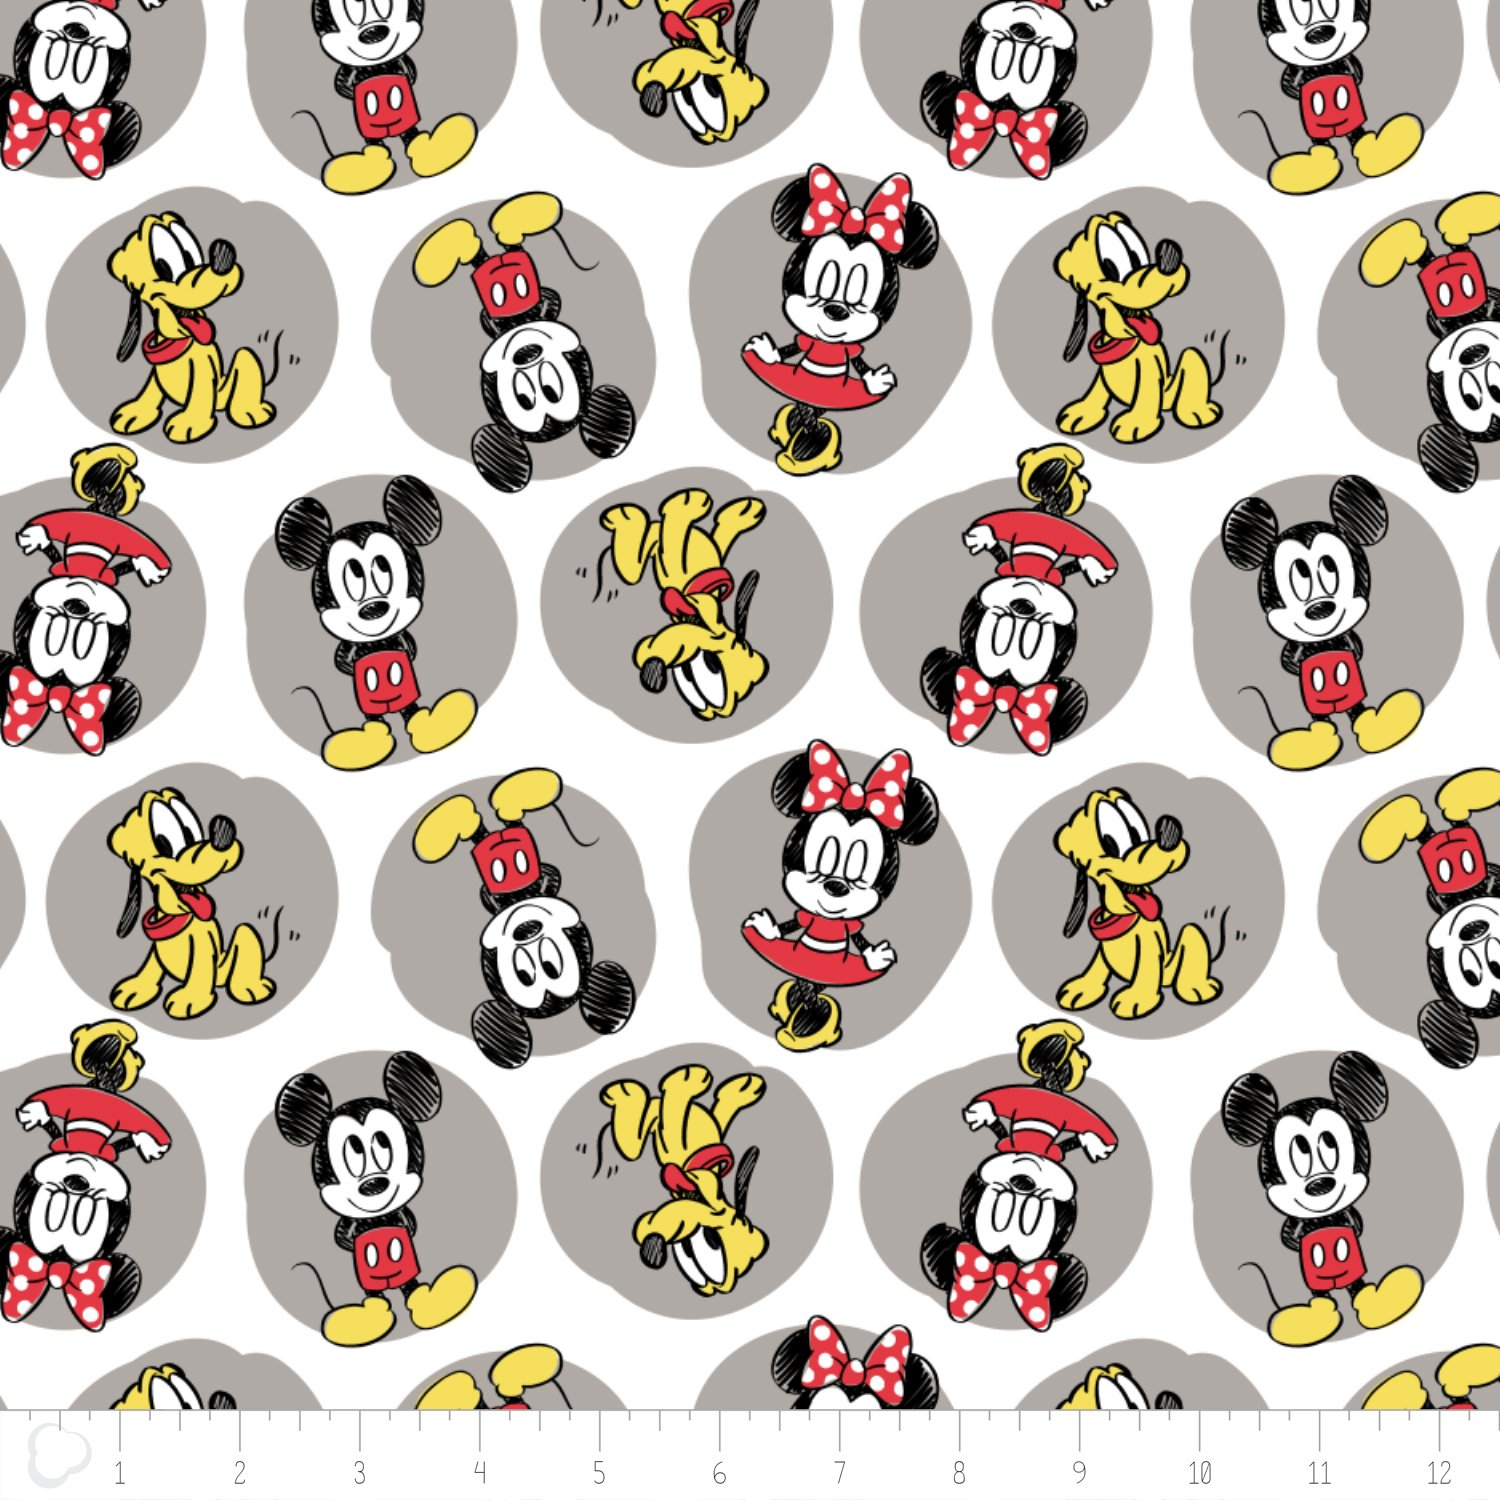 Mickey, Minnie, Pluto flannel